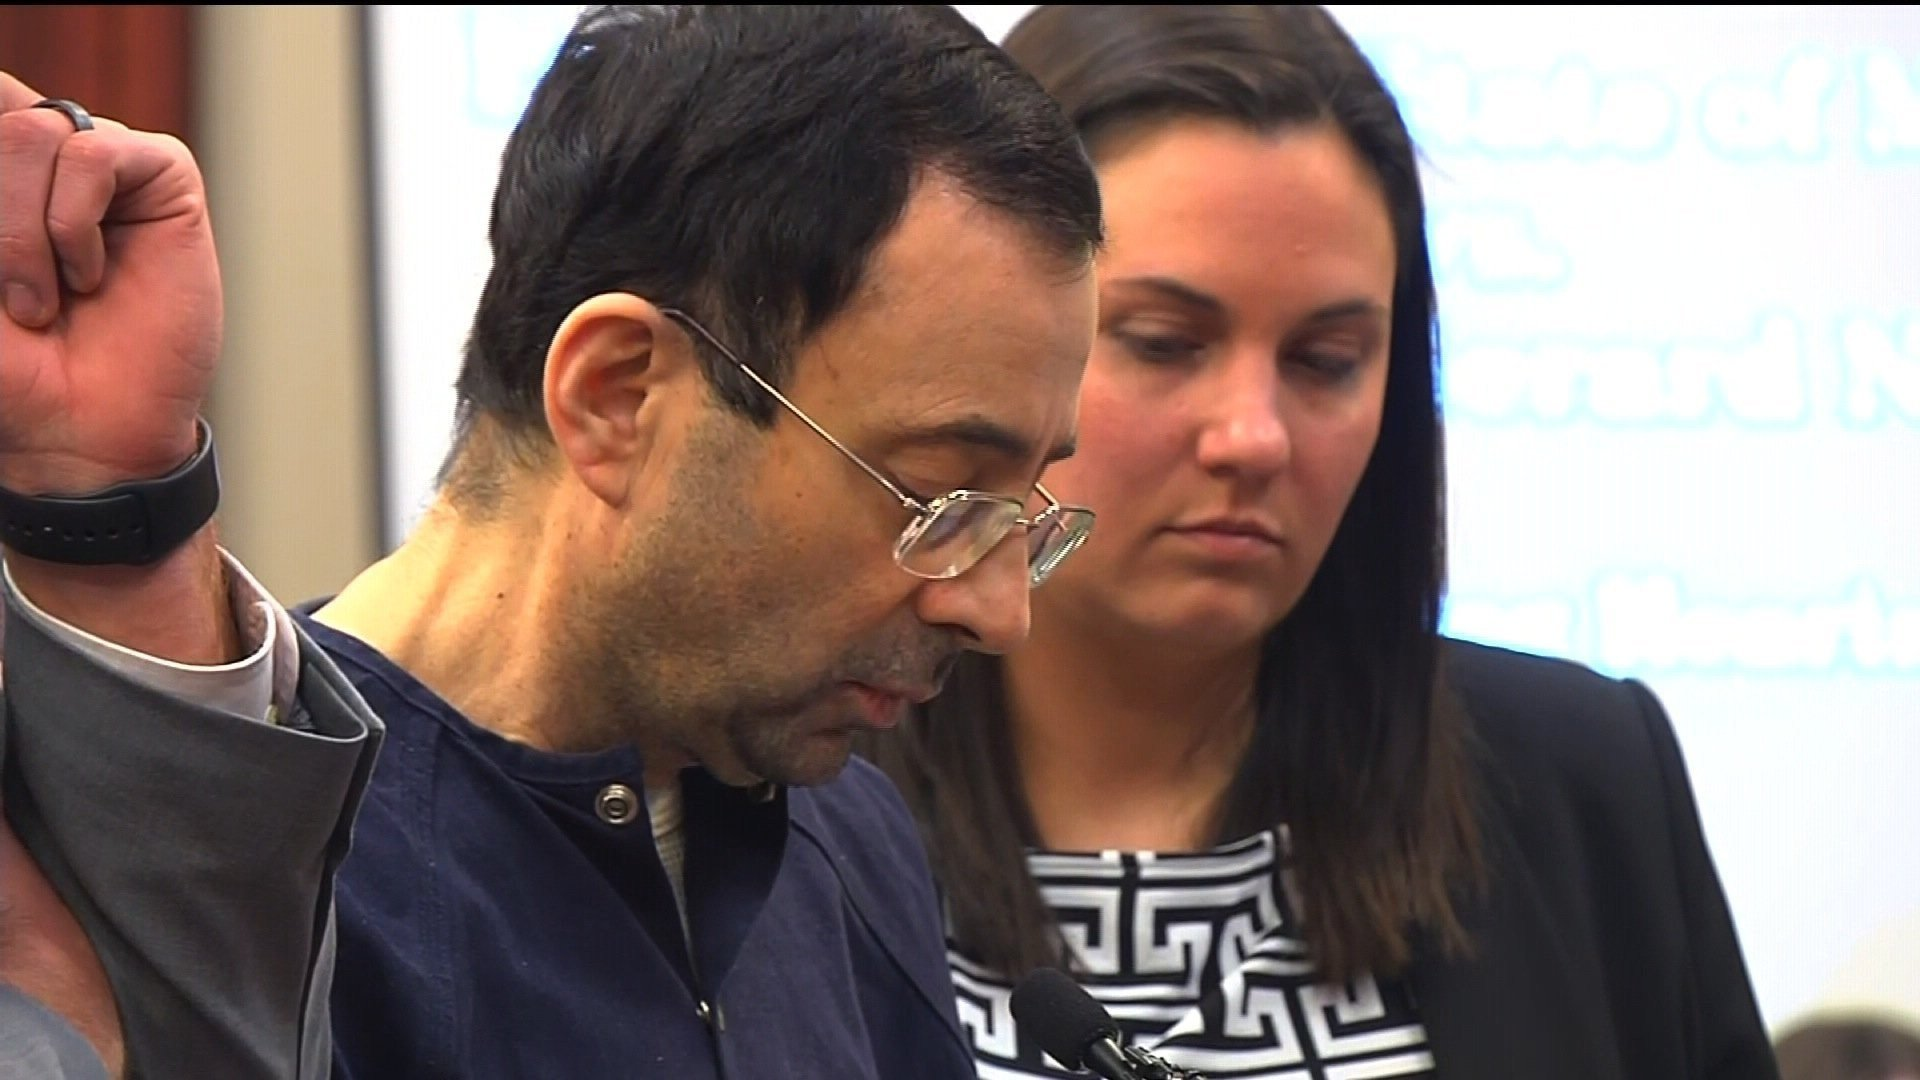 Father of Three Victims Tries to Attack Larry Nassar in Courtroom